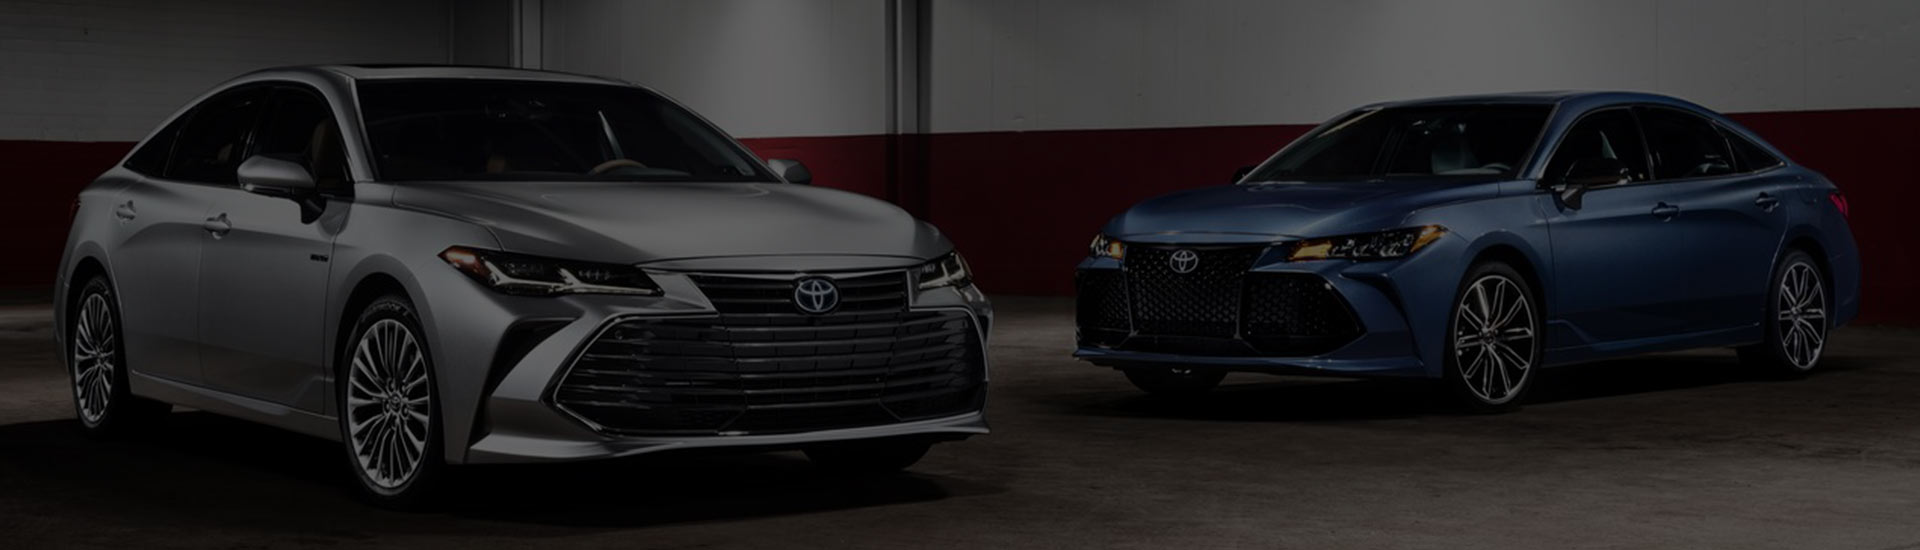 The 2018 Toyota Avalon Vs The 2018 Nissan Maxima at Rivertown Toyota in Columbus, GA